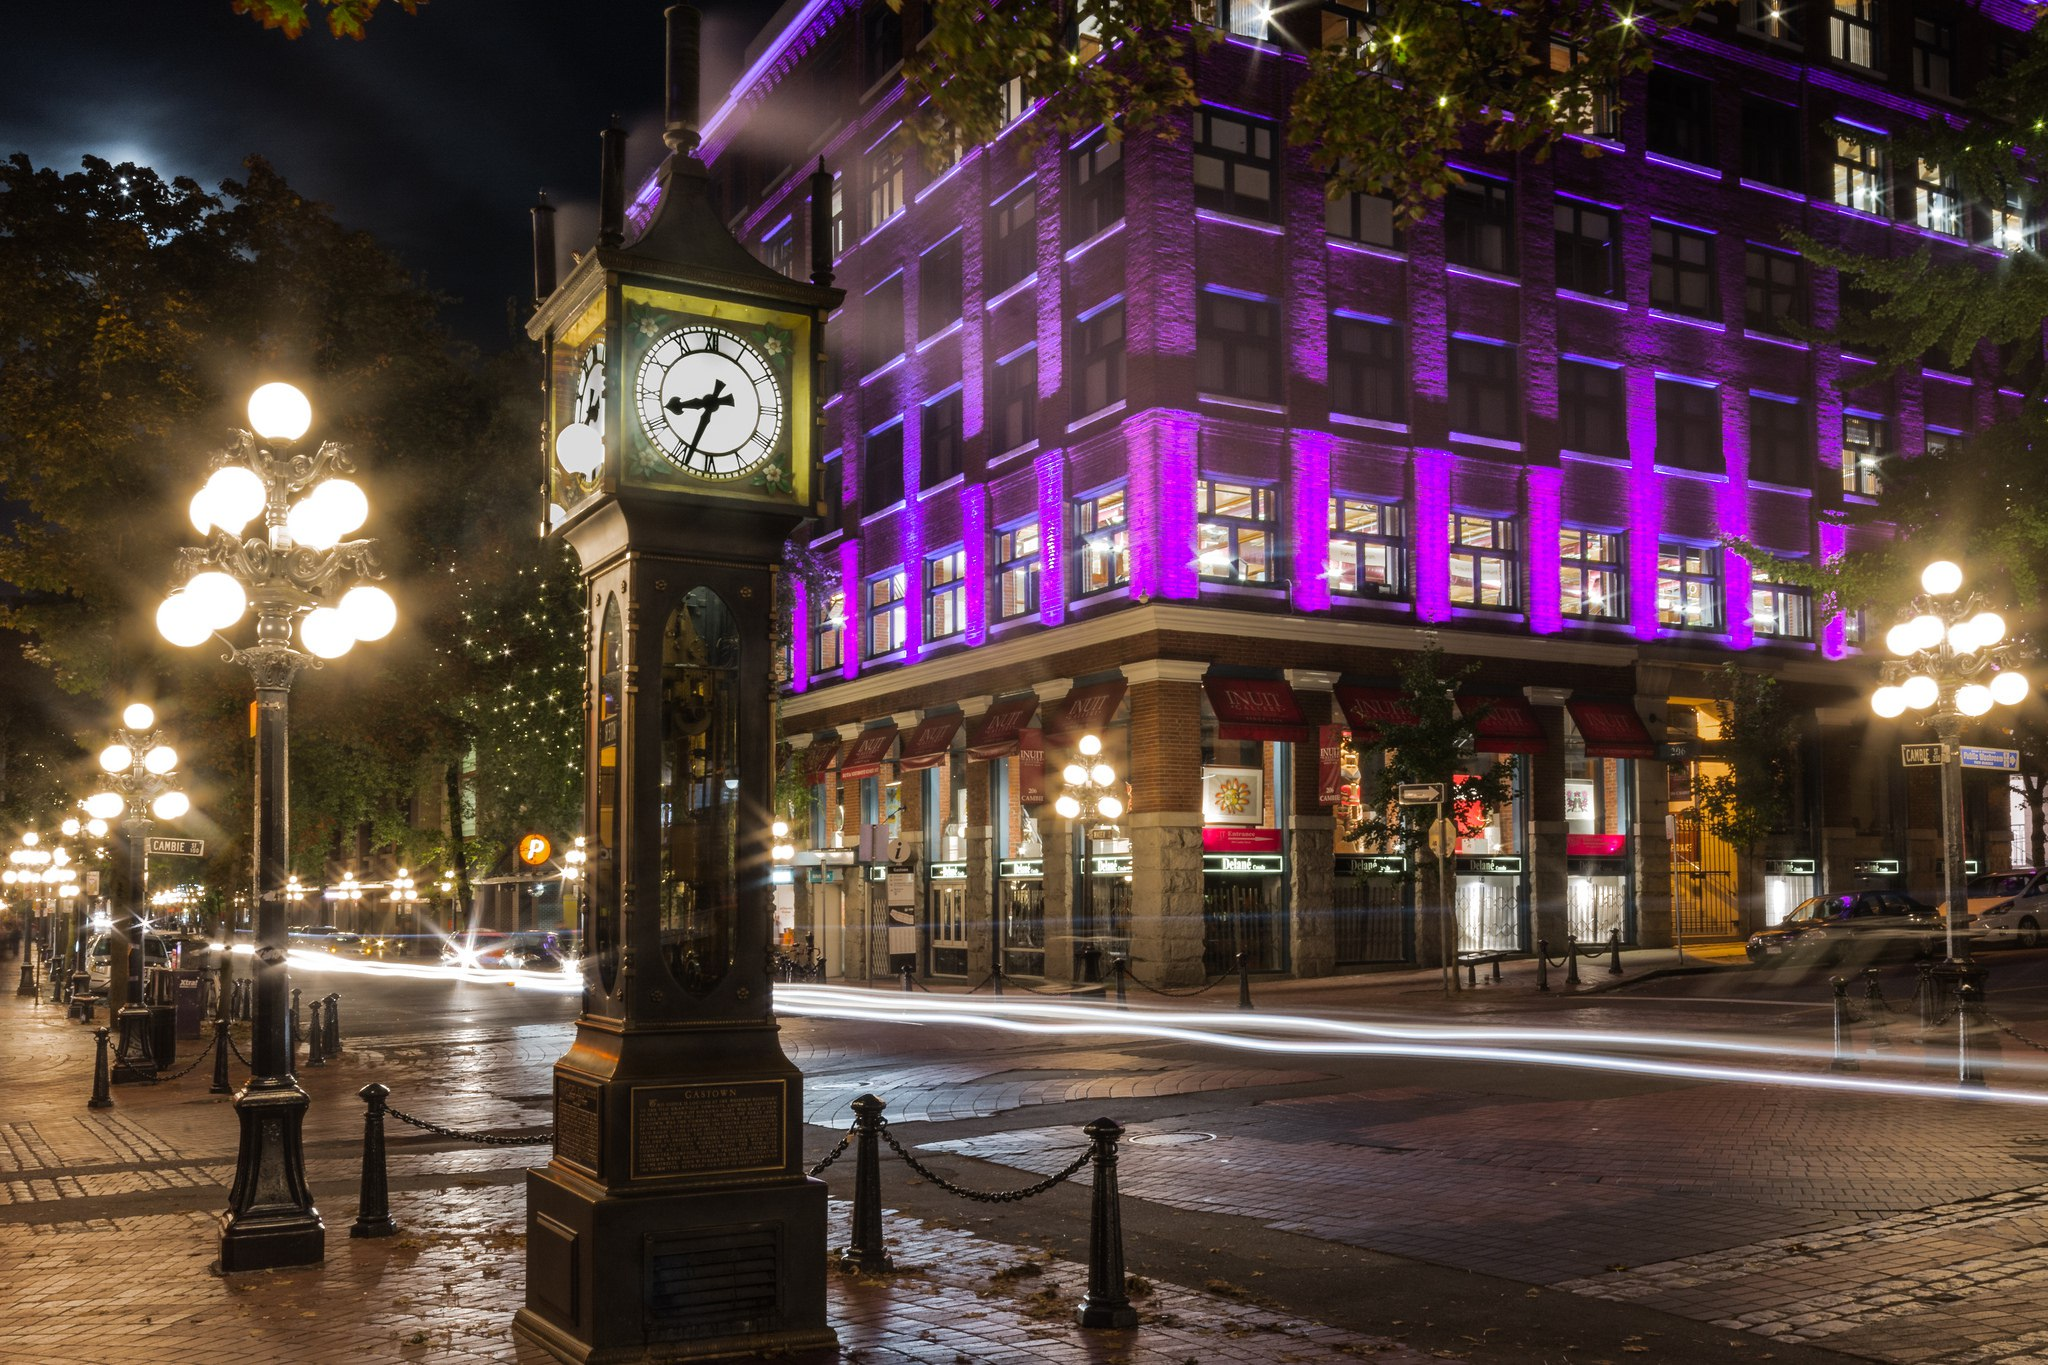 gastown-steam-clock-vancovuer